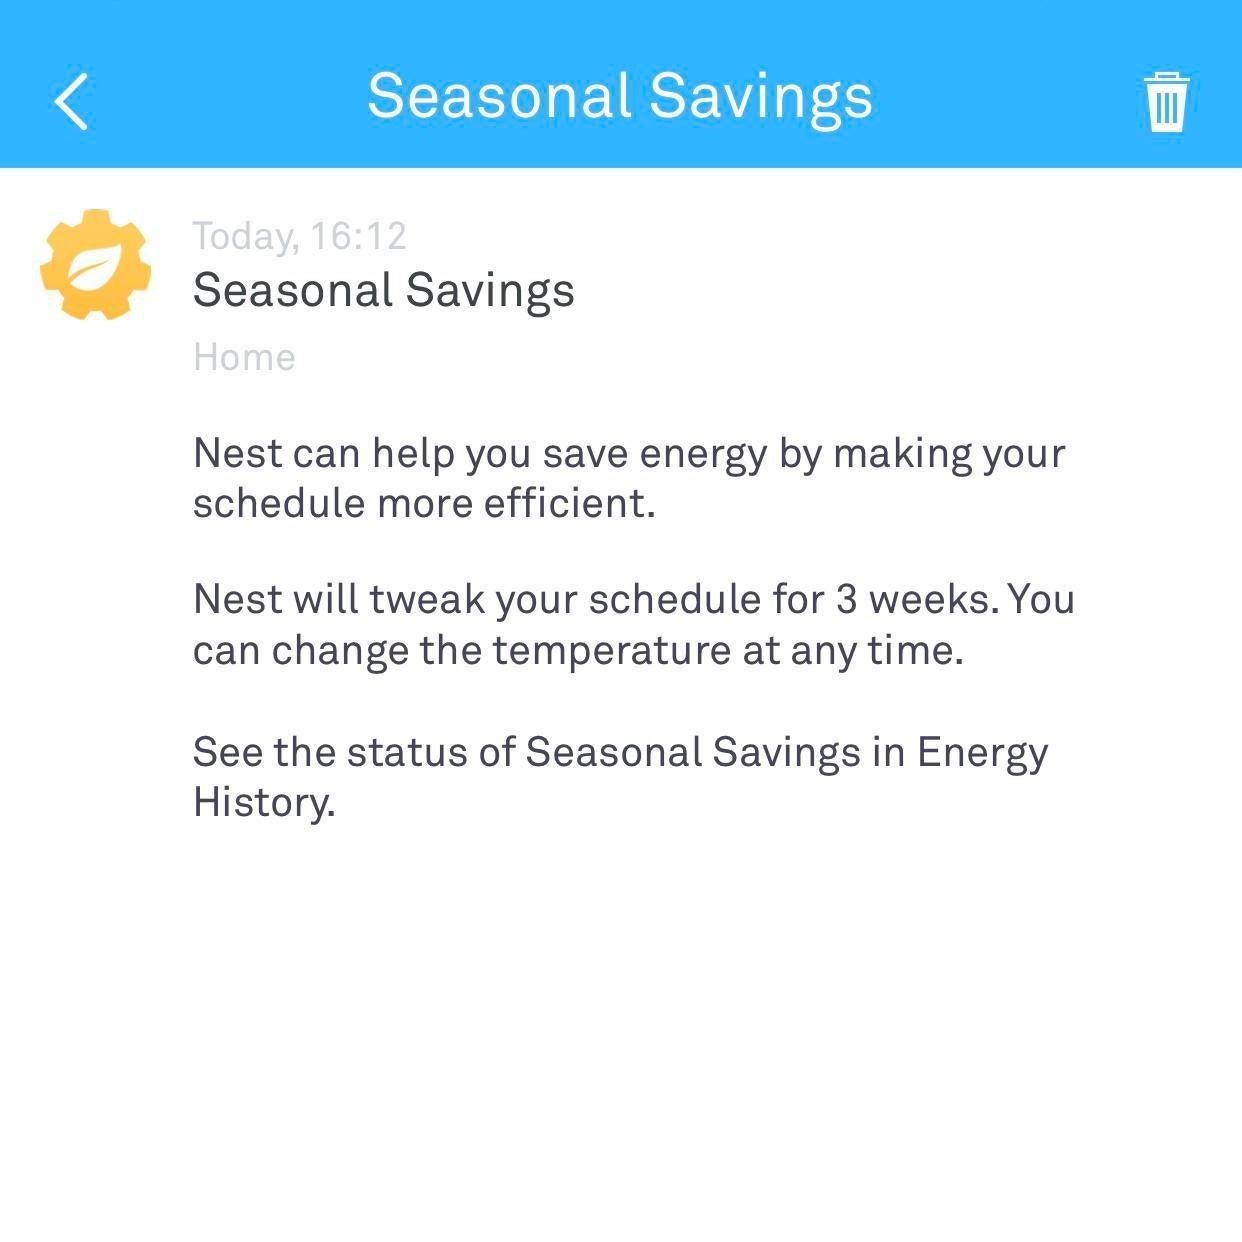 Nest Thermostats are getting Winter Seasonal Savings from Google.